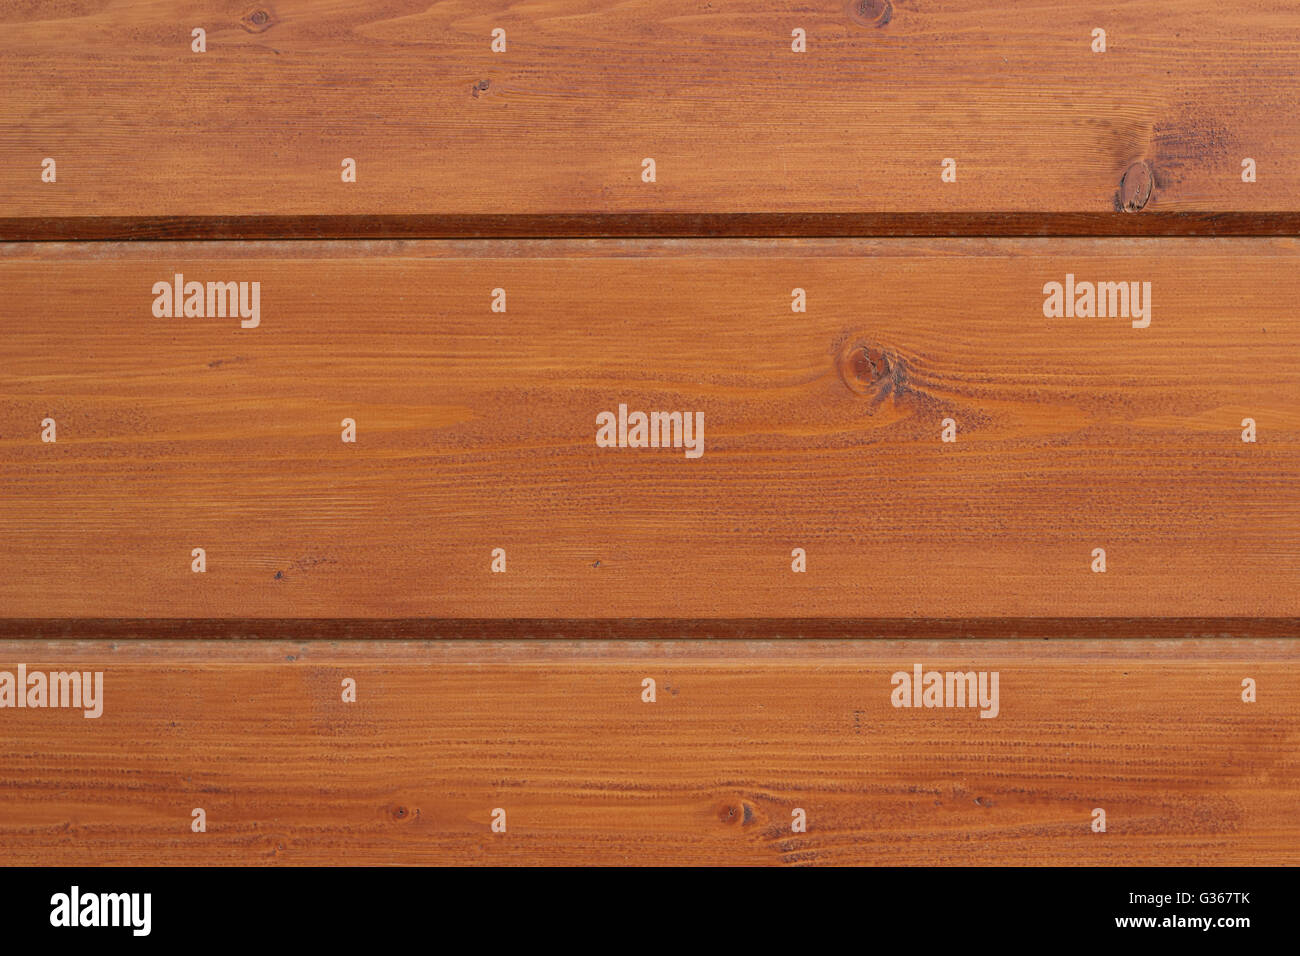 Three colored wooden horizontal board background photo - Stock Image